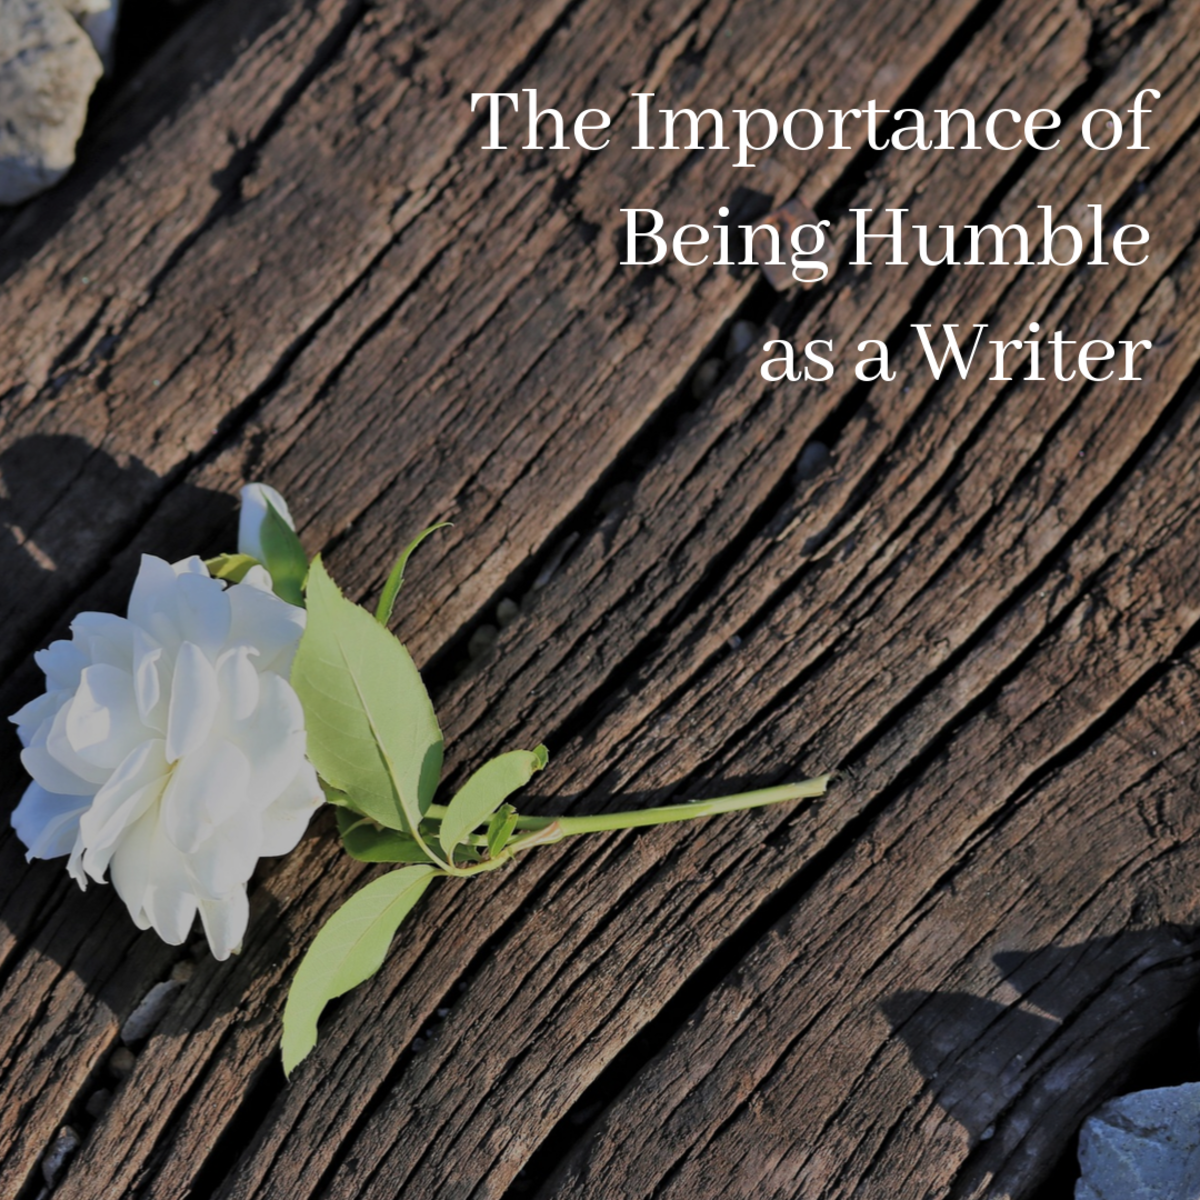 Humility is an absolutely vital characteristic if you plan on being a great writer.